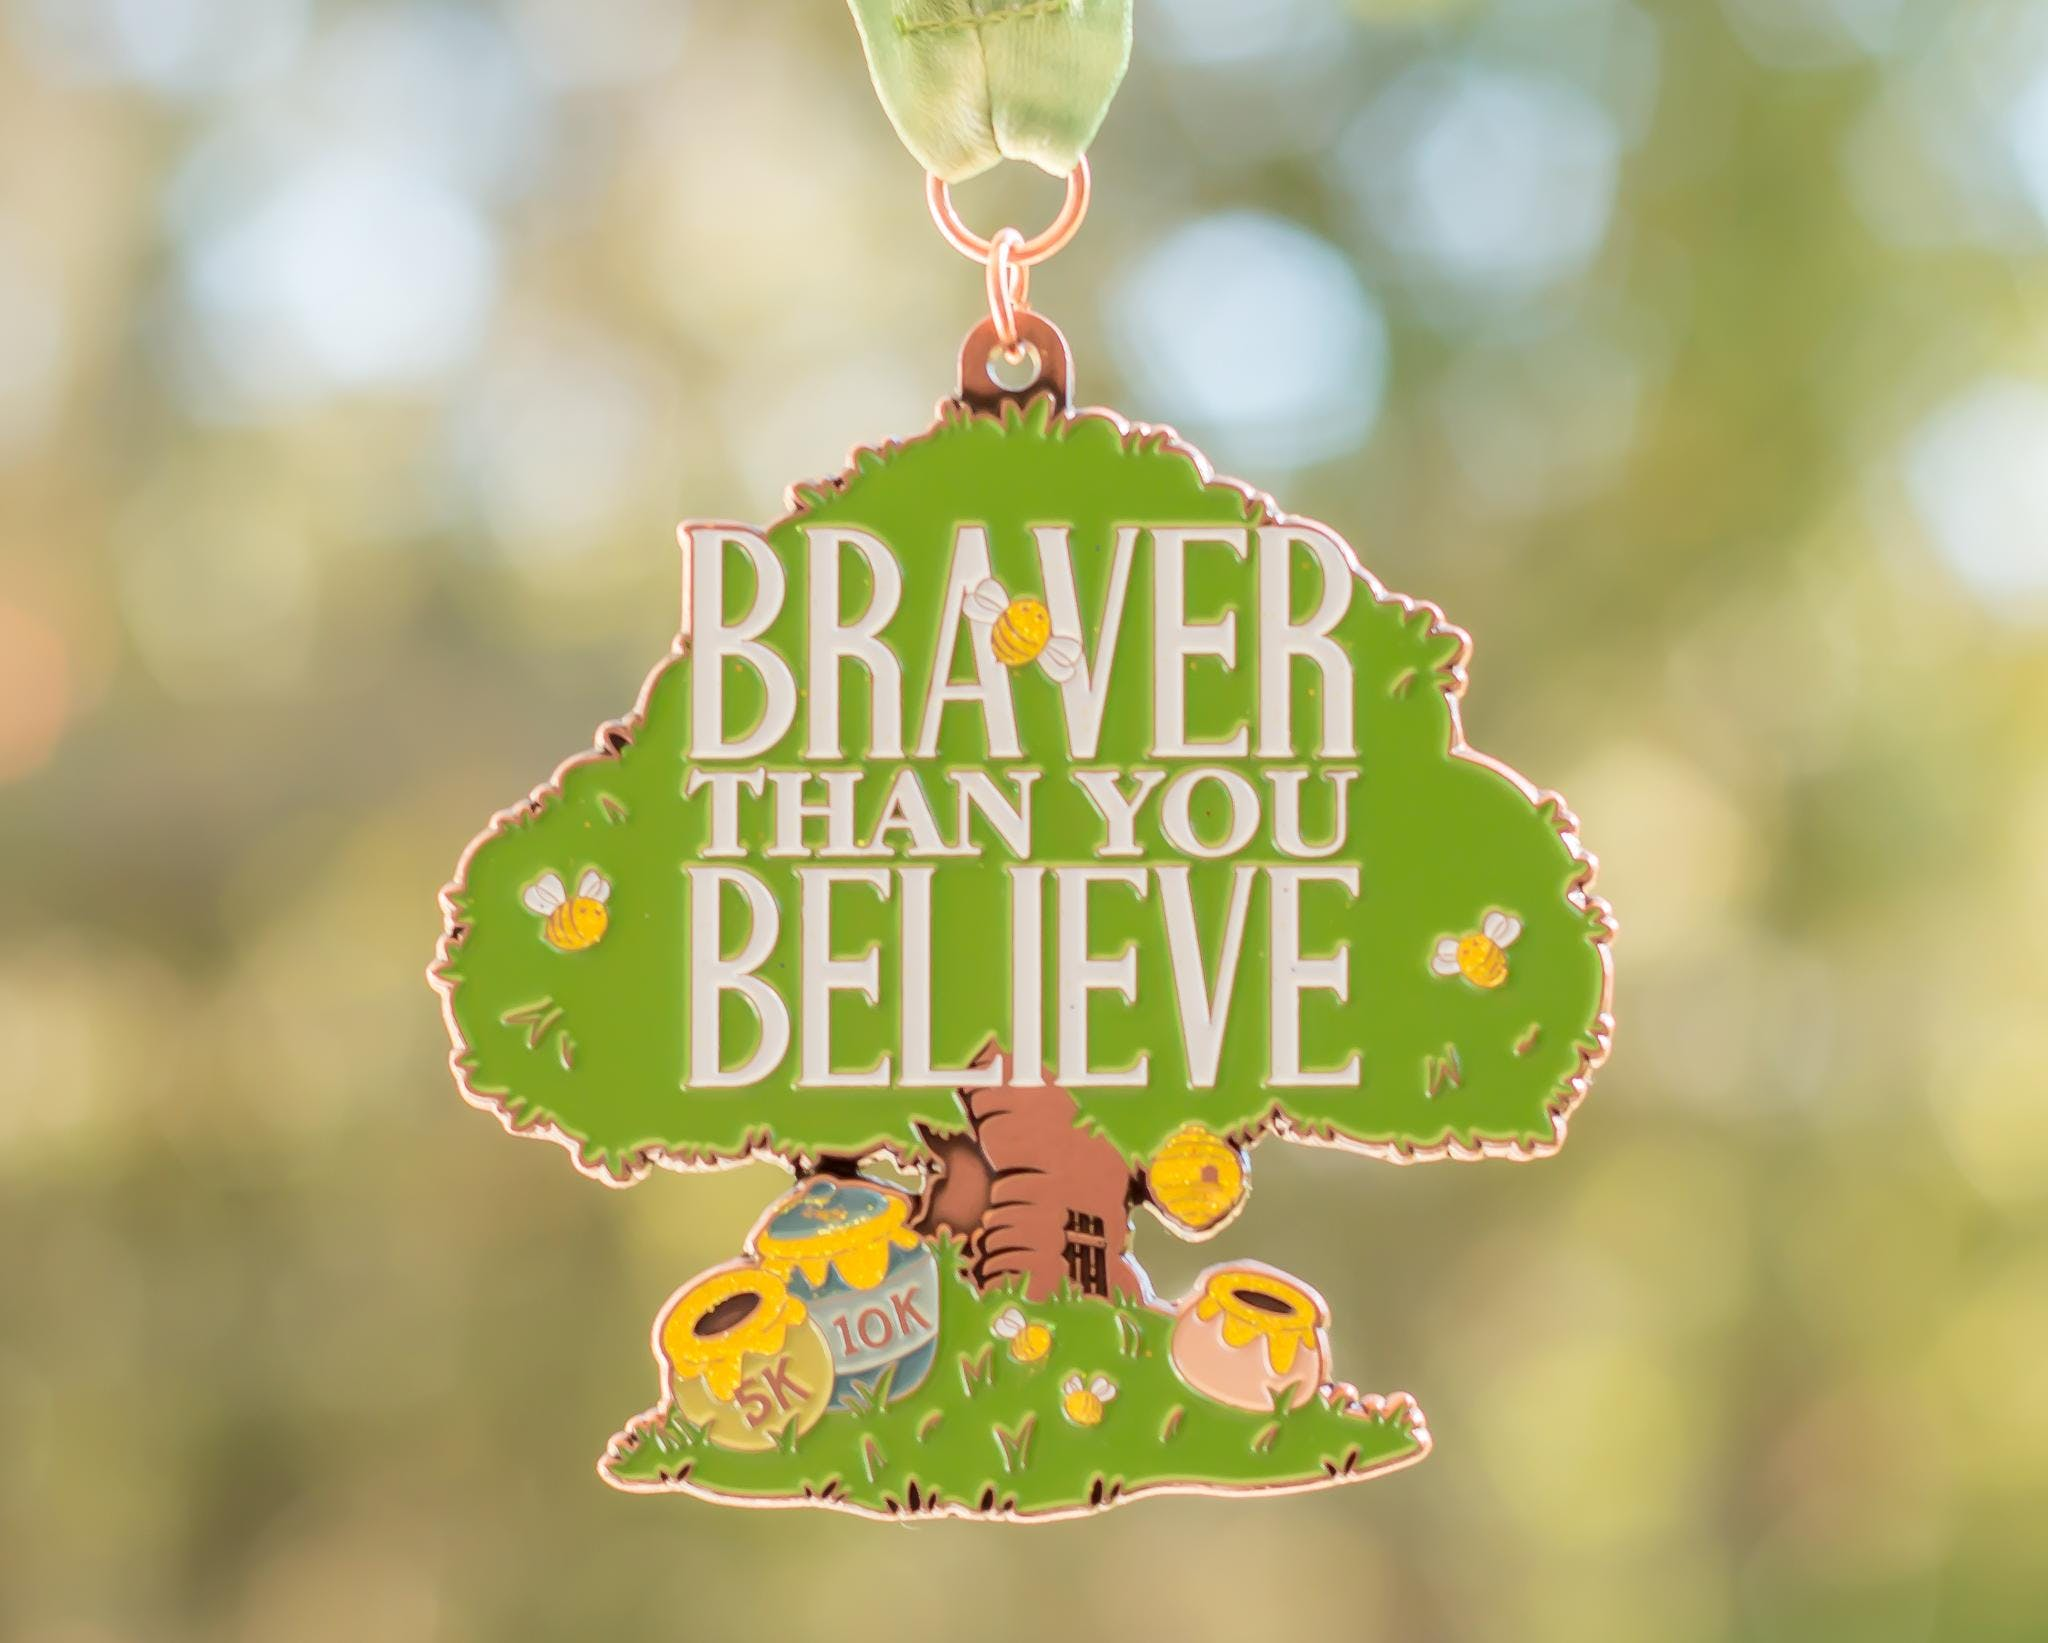 2019 Braver Than You Believe 5K & 10K in honor of National Winnie the Pooh Day - Scottsdale